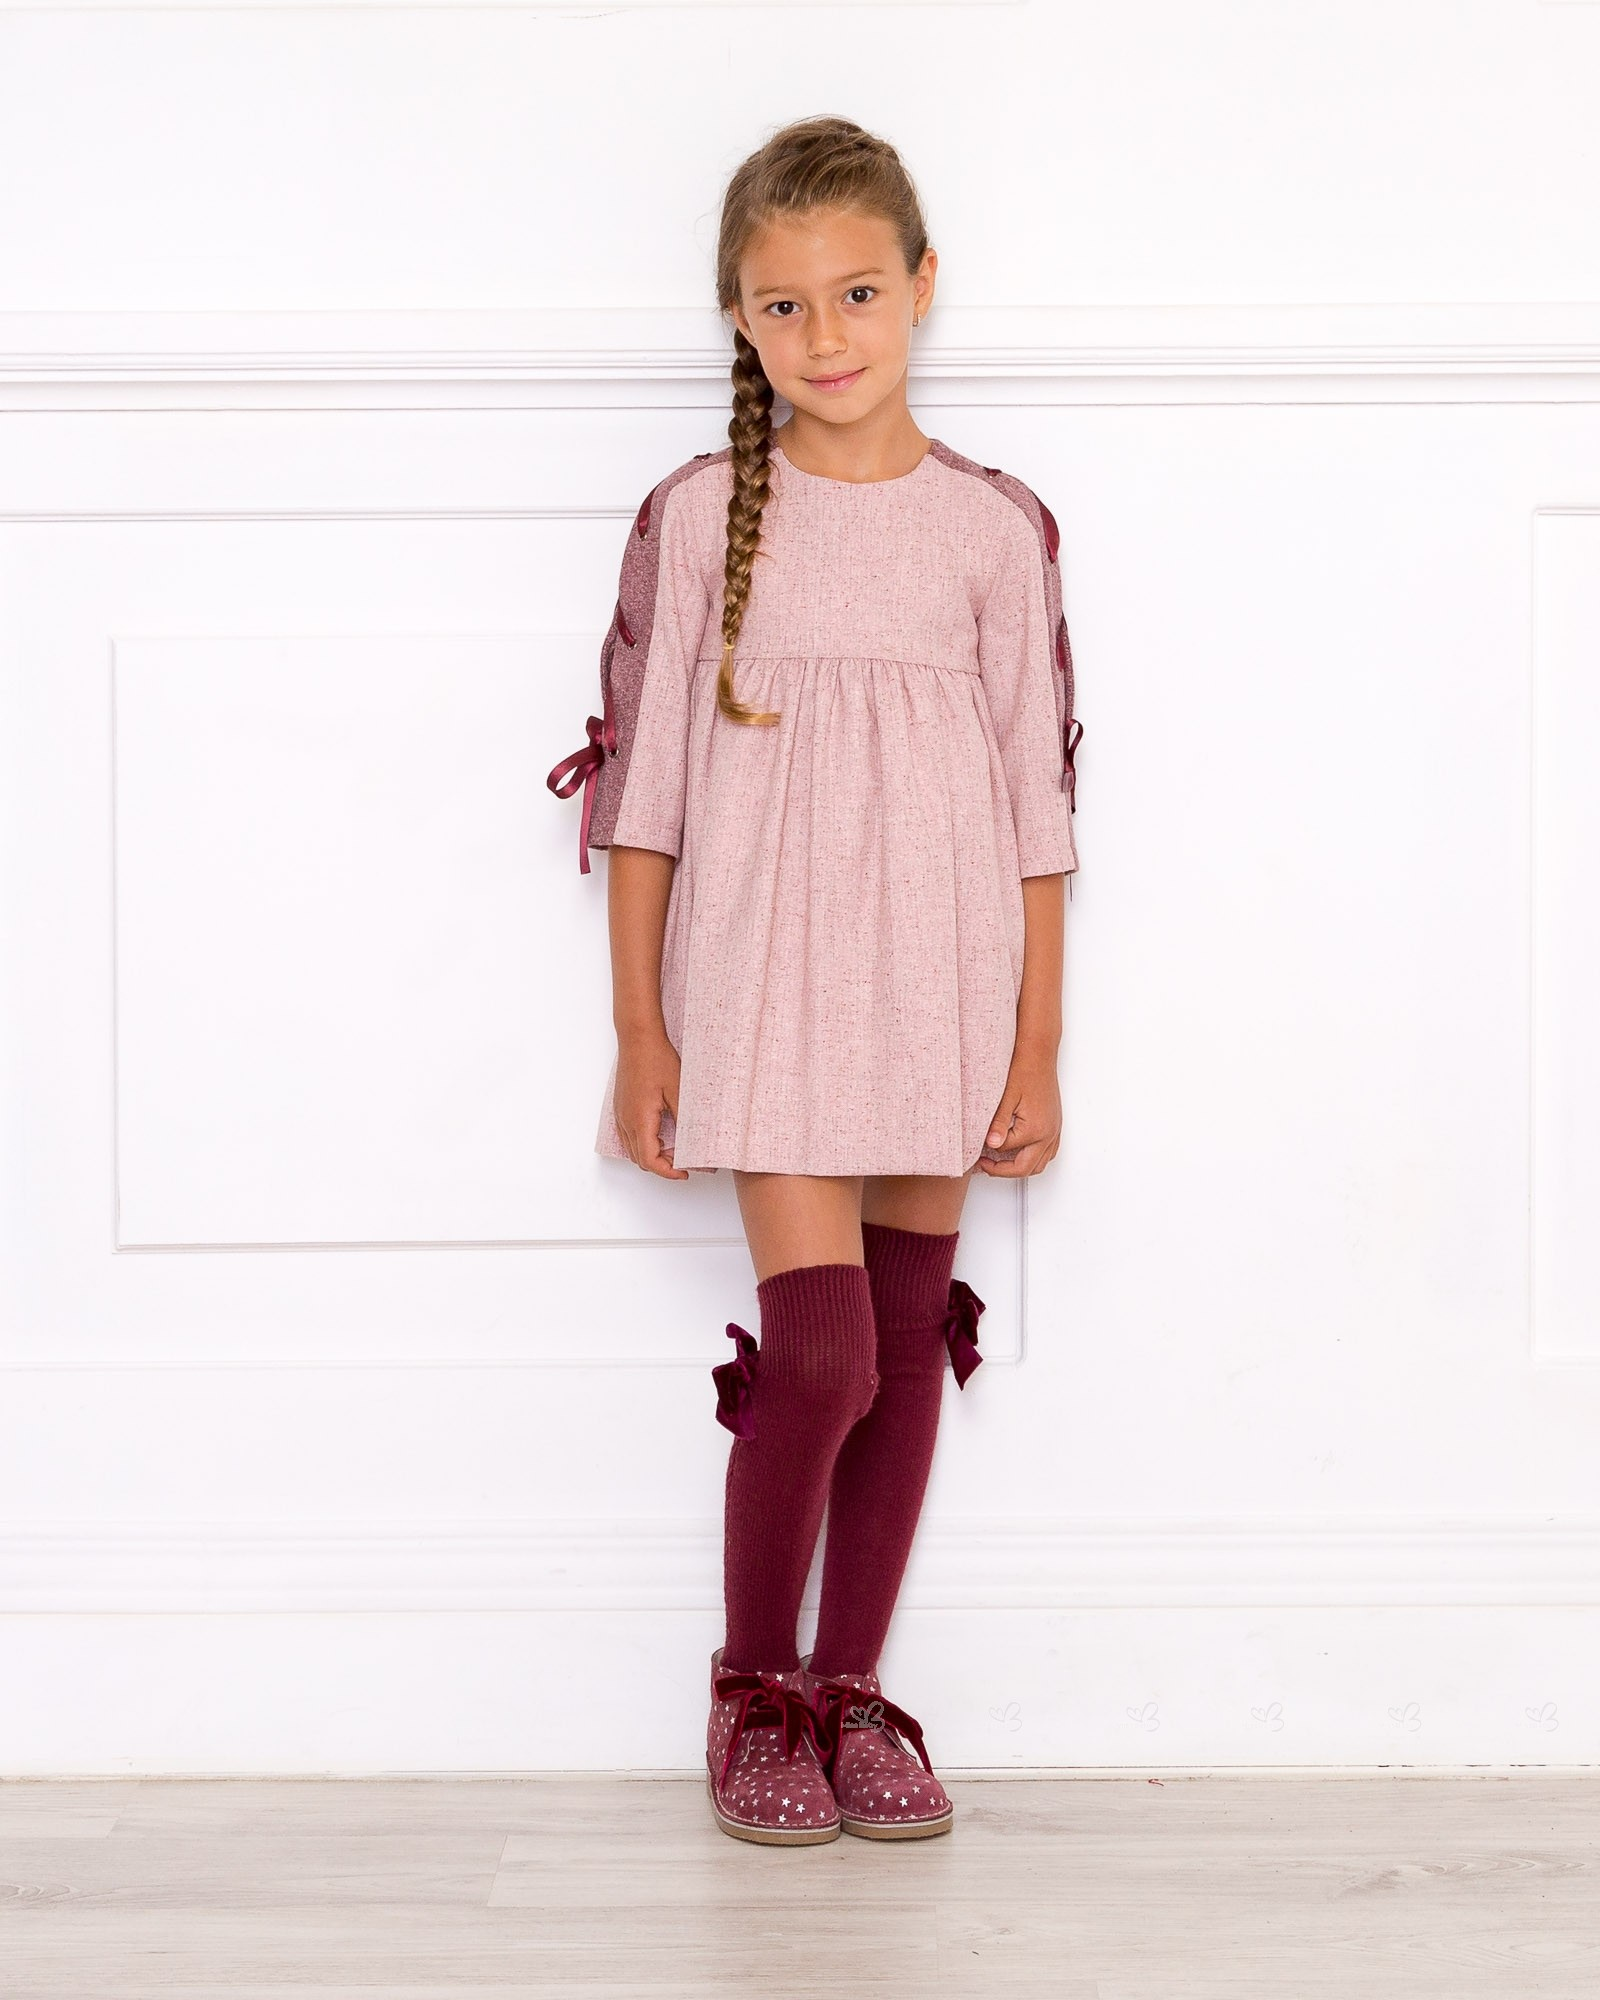 S Pink Burgundy Dress Outfit Missbaby